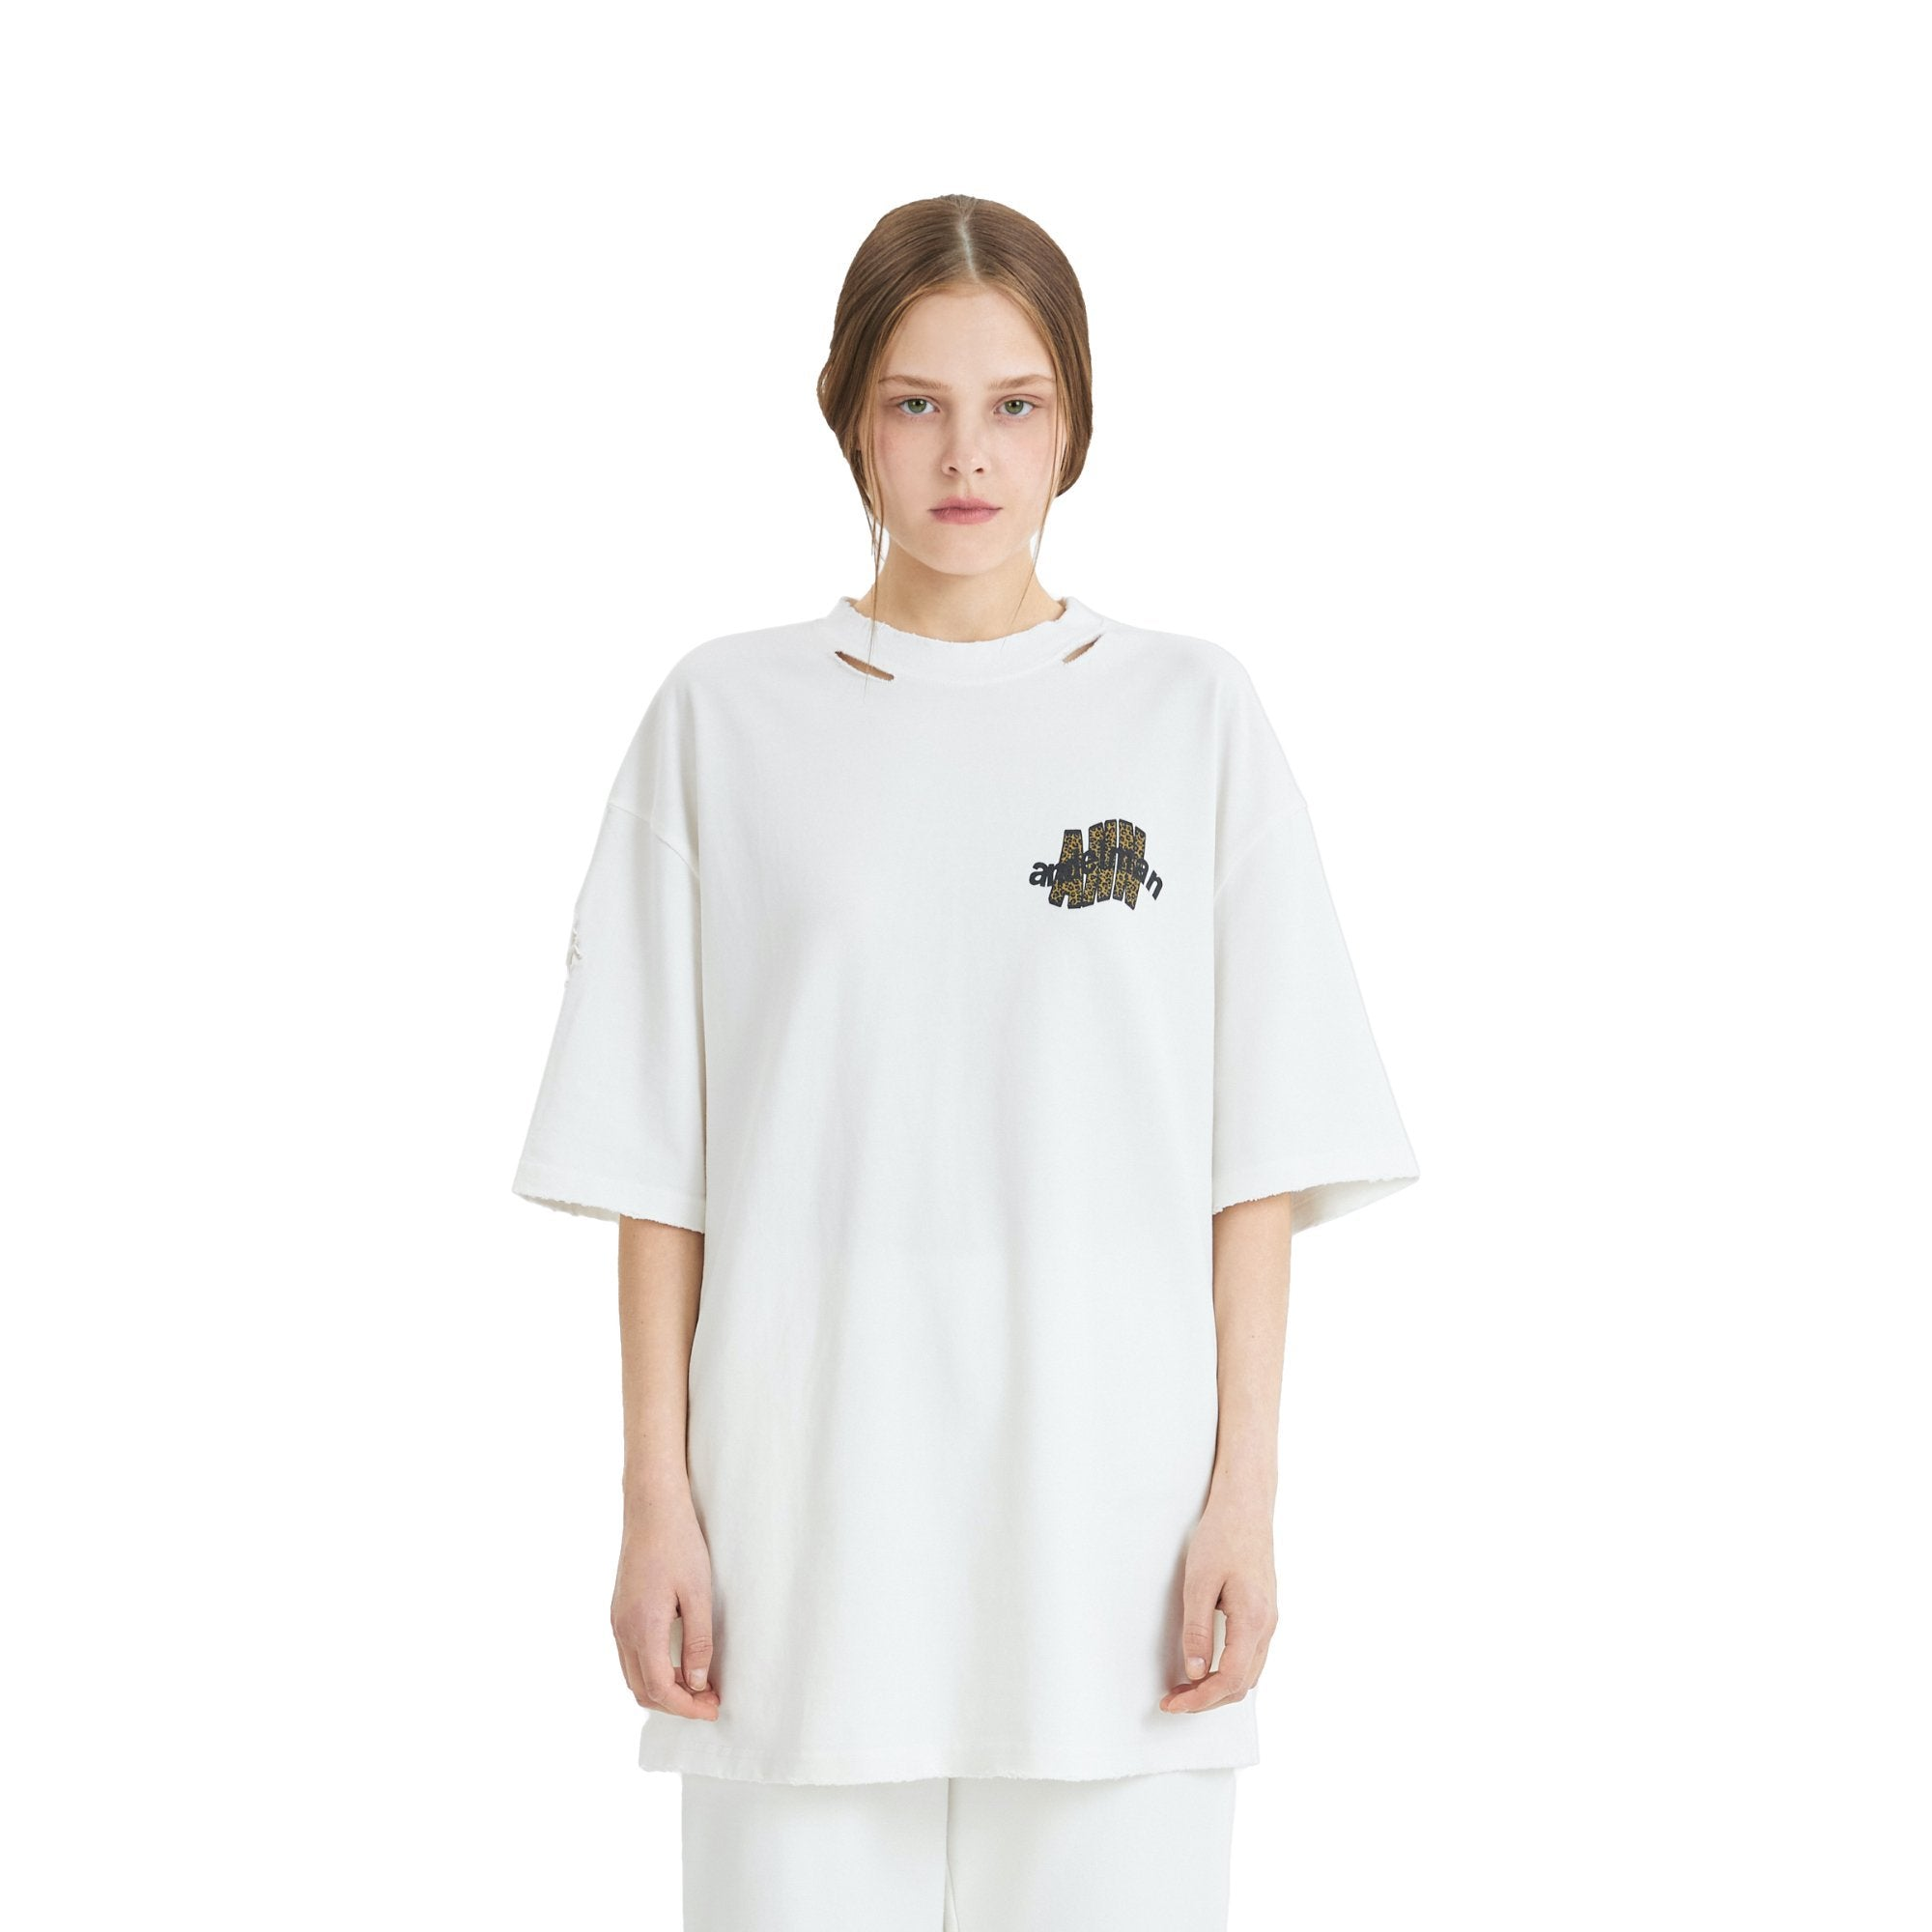 ANN ANDELMAN Leopard Logo Tee White | MADA IN CHINA